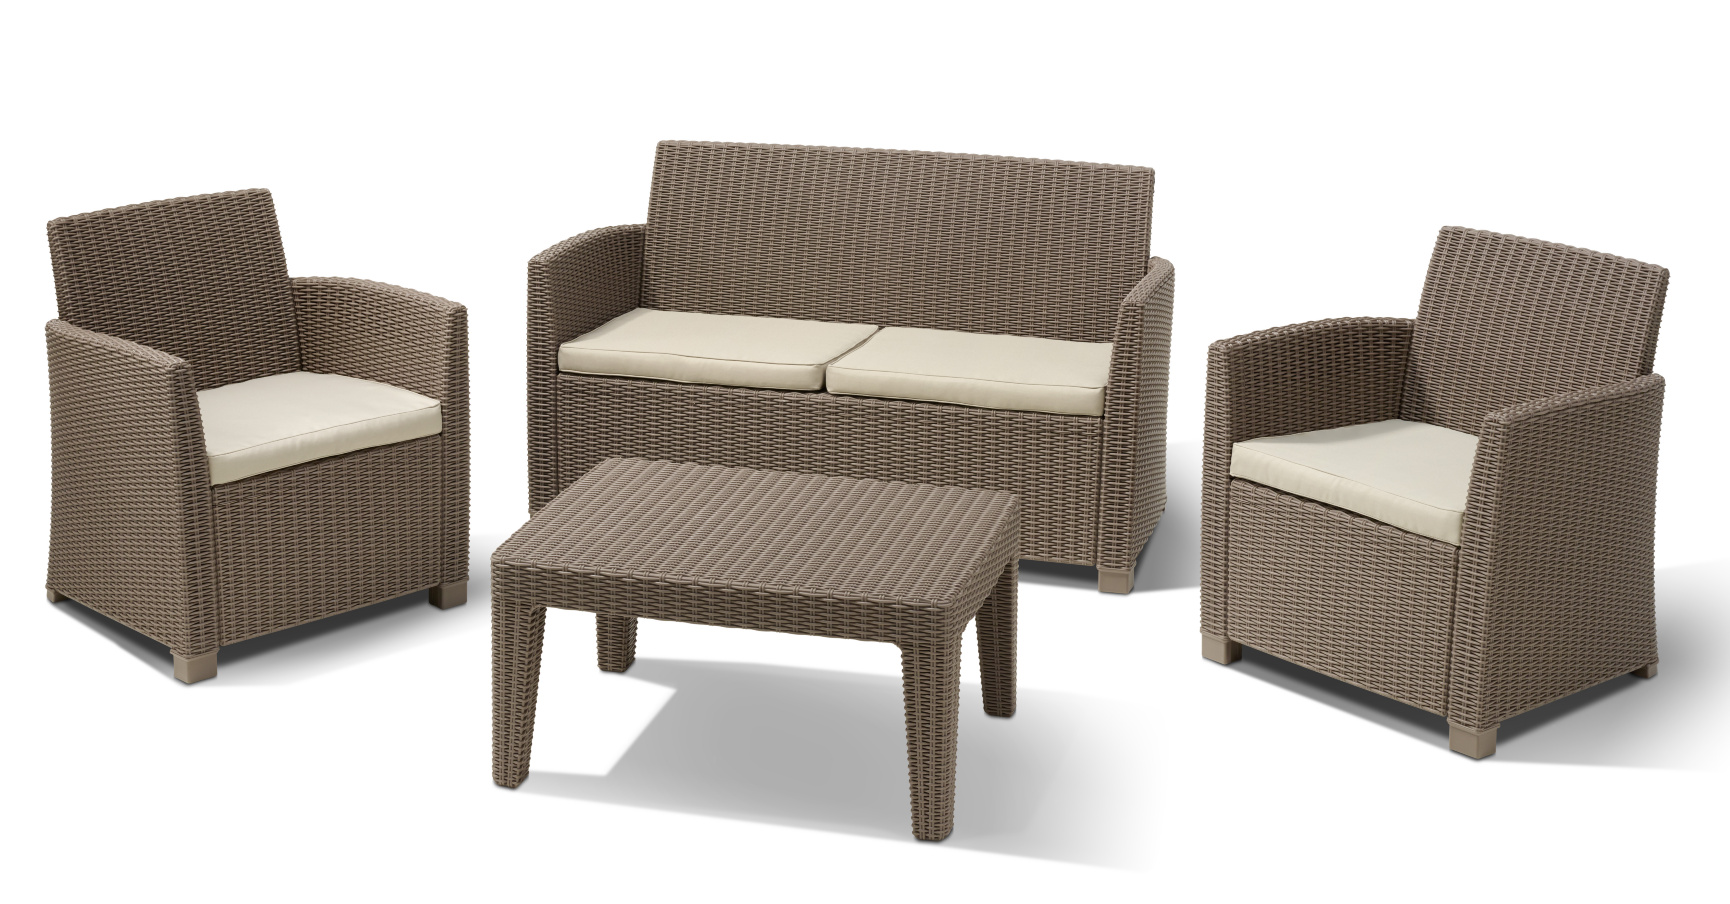 Allibert corona ensemble de salon cappuccino allibert - Salon de jardin allibert hawaii lounge set ...